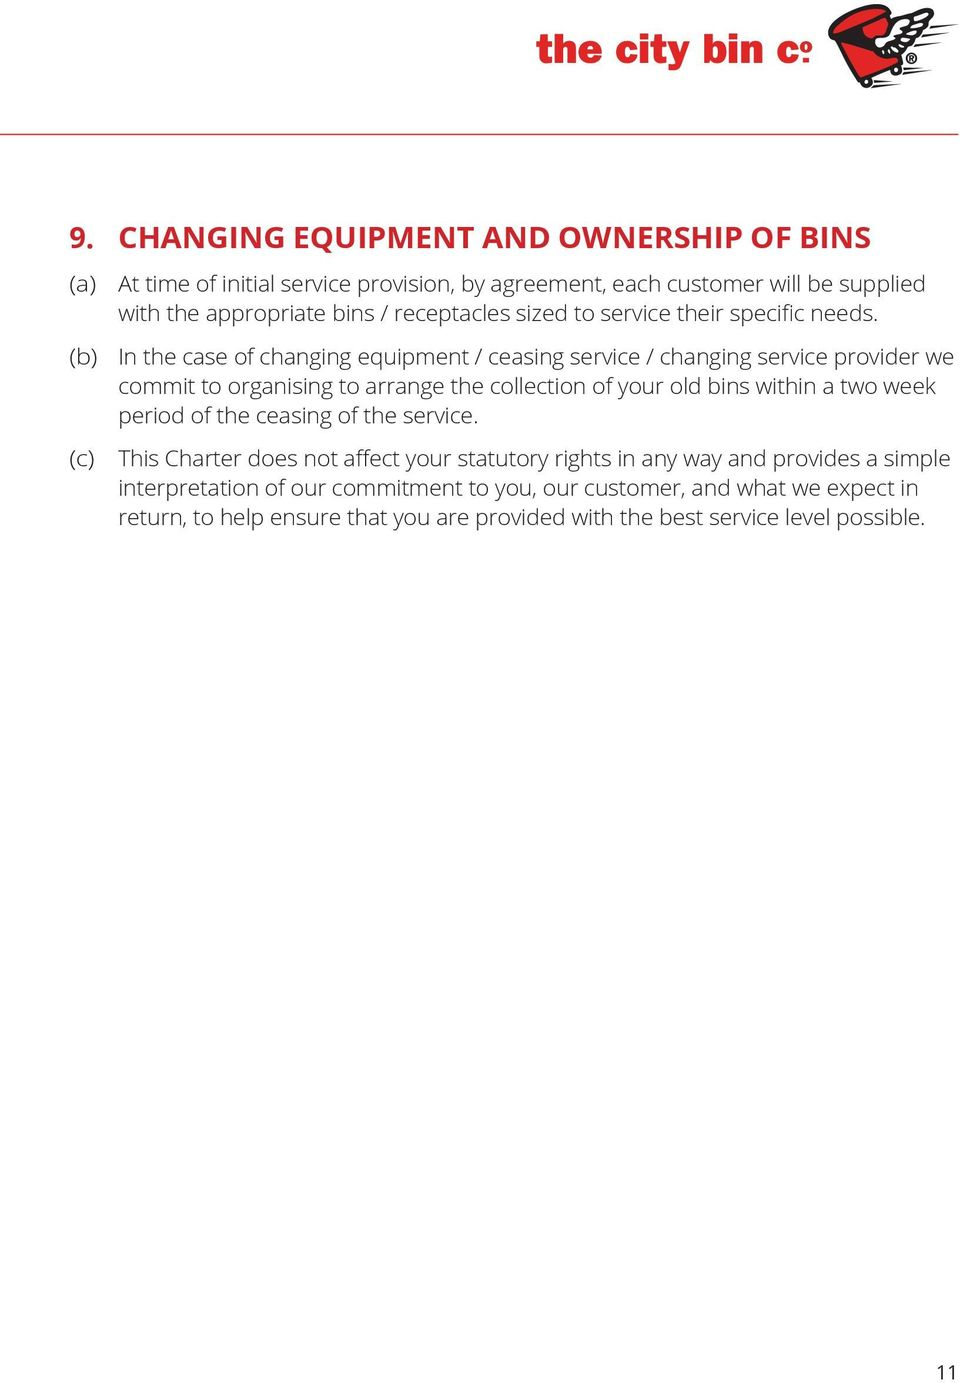 (b) In the case of changing equipment / ceasing service / changing service provider we commit to organising to arrange the collection of your old bins within a two